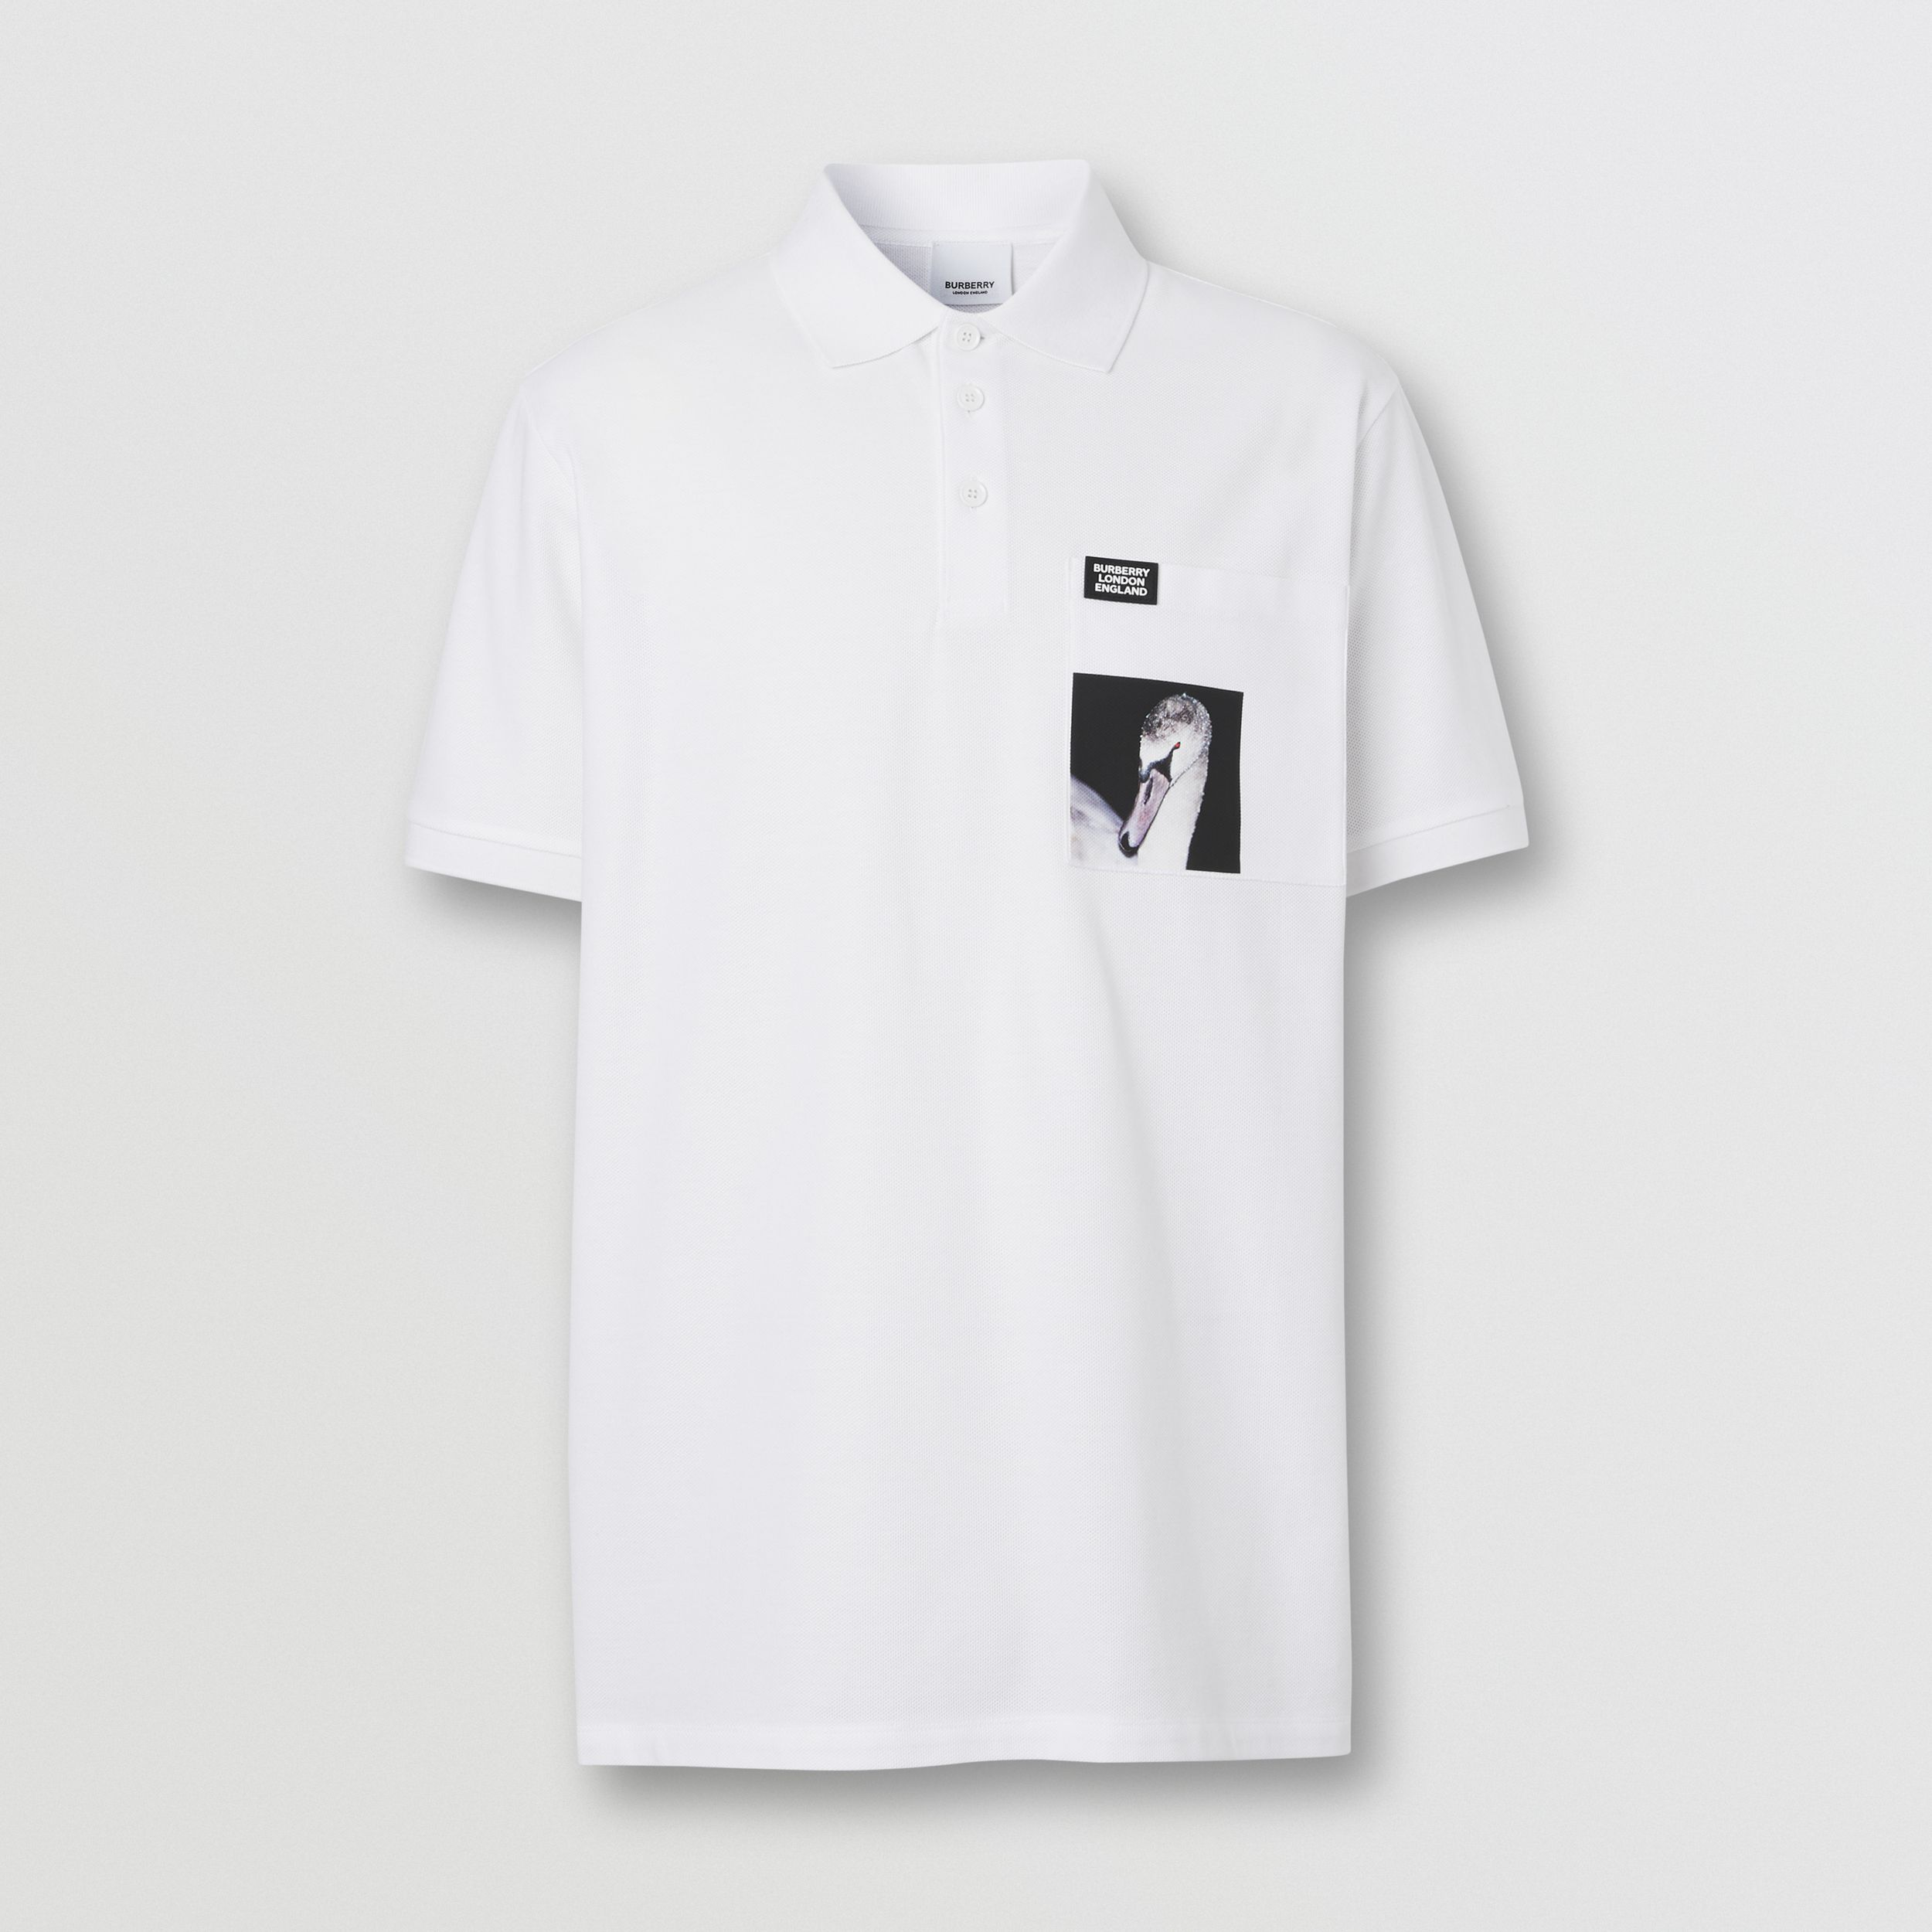 Swan Print Cotton Polo Shirt in White - Men | Burberry Australia - 4